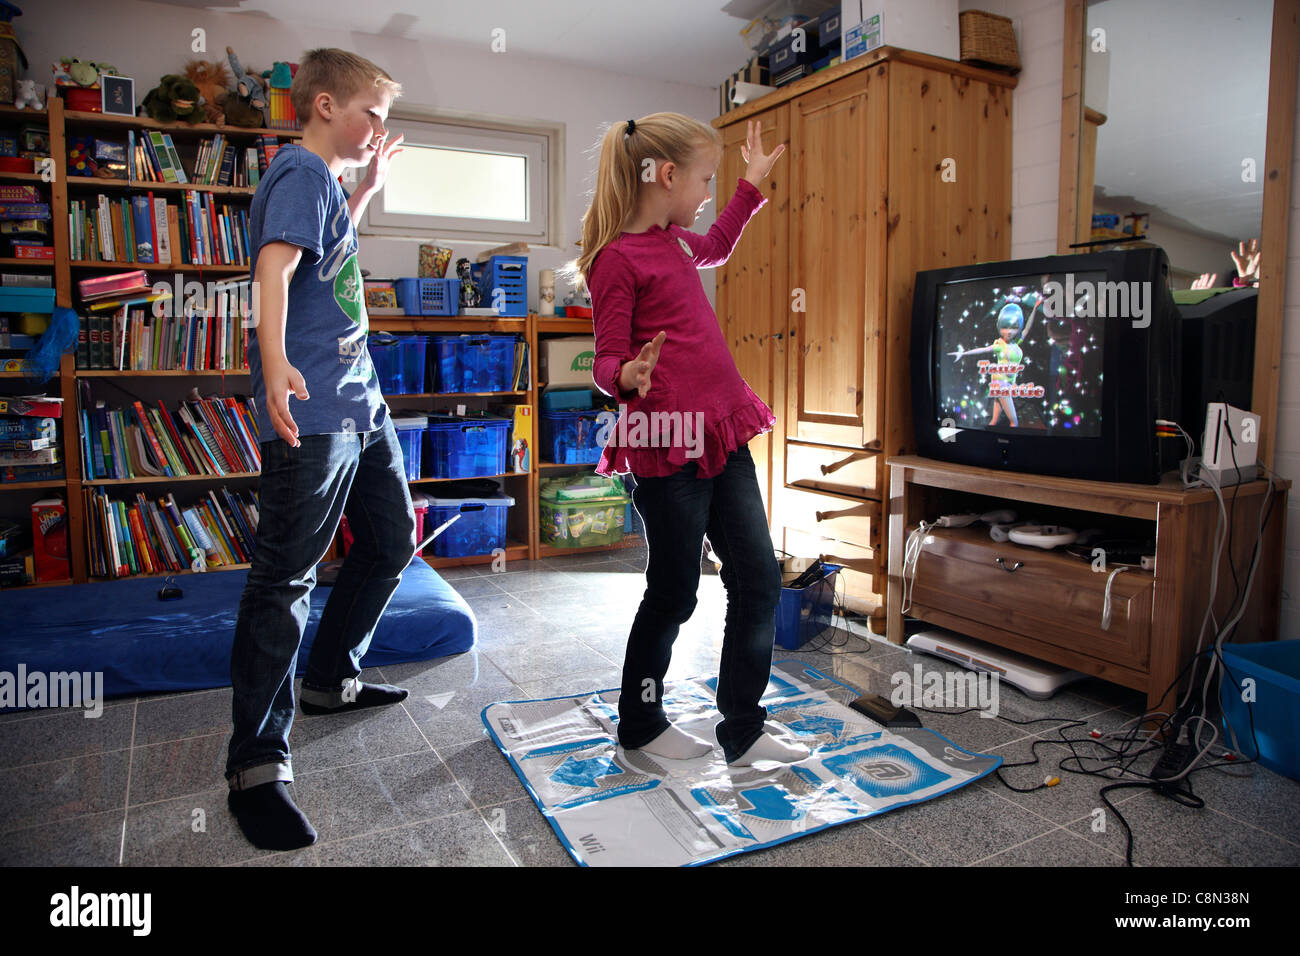 Two kids, girl 10 and boy 13 years old, playing at home with a WII video game. - Stock Image